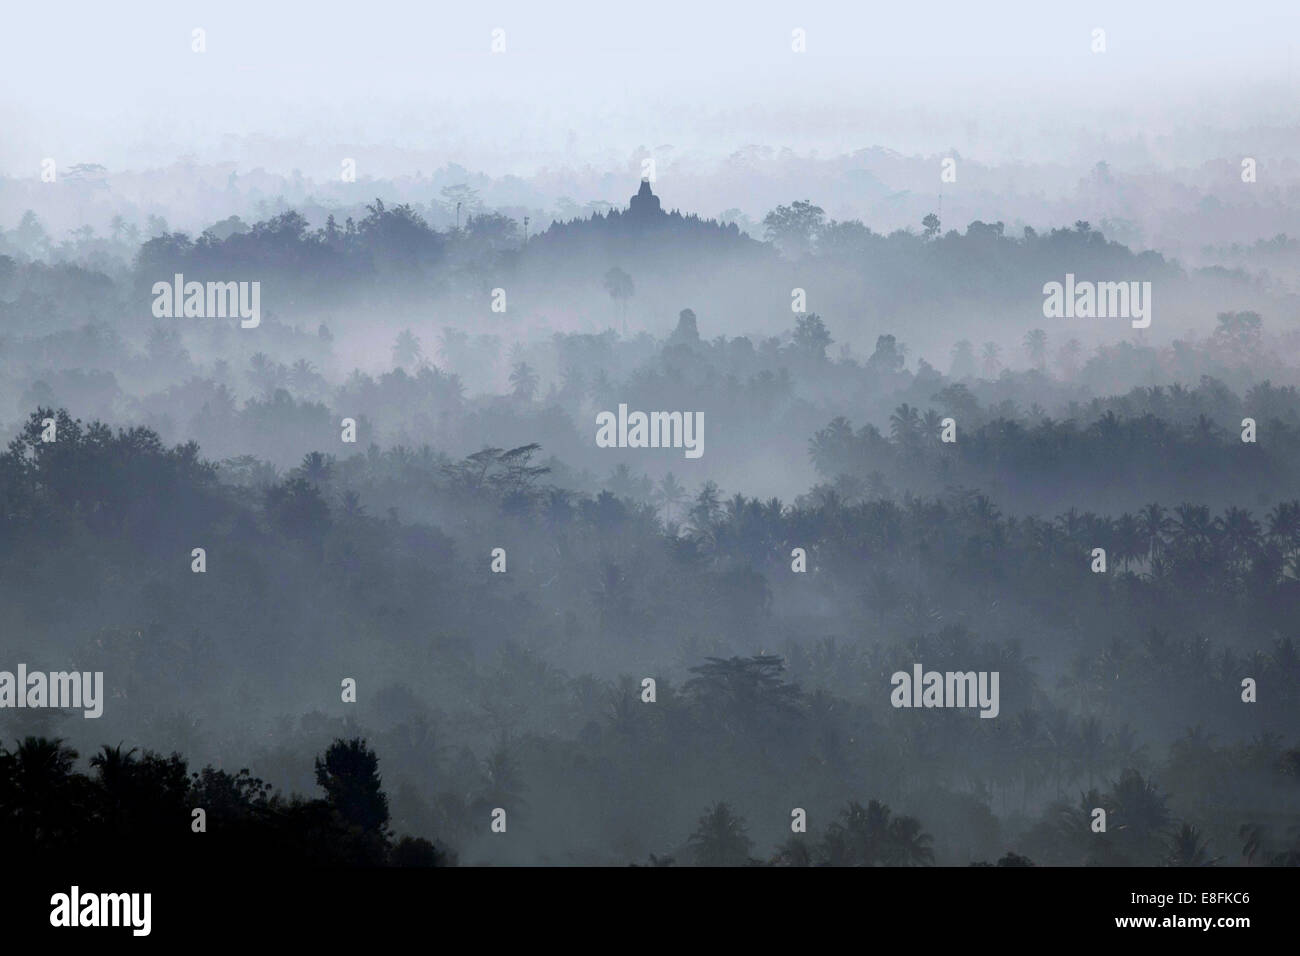 Indonesia, Central Java, Morning in Borobudur Temple - Stock Image